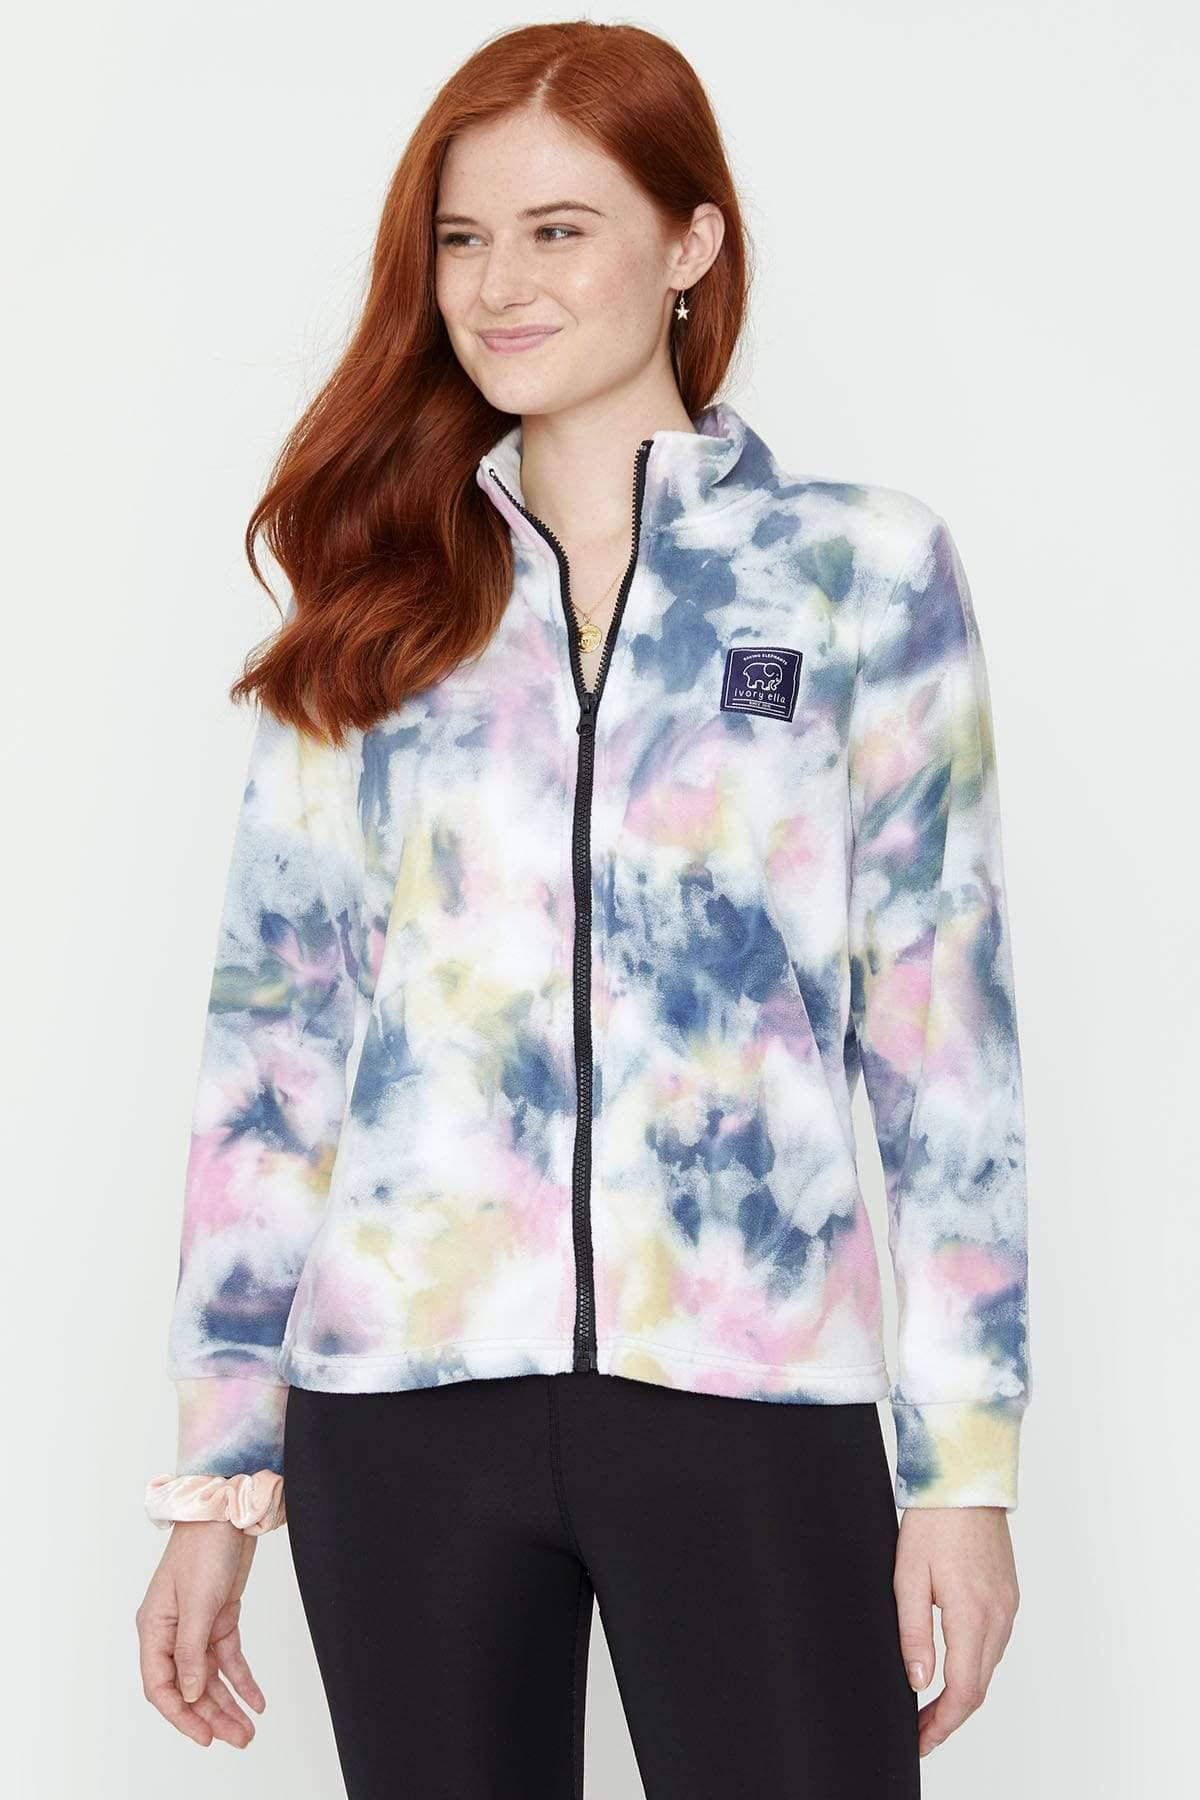 Ivory Ella Women's Outerwear Tie Dye Polar Fleece